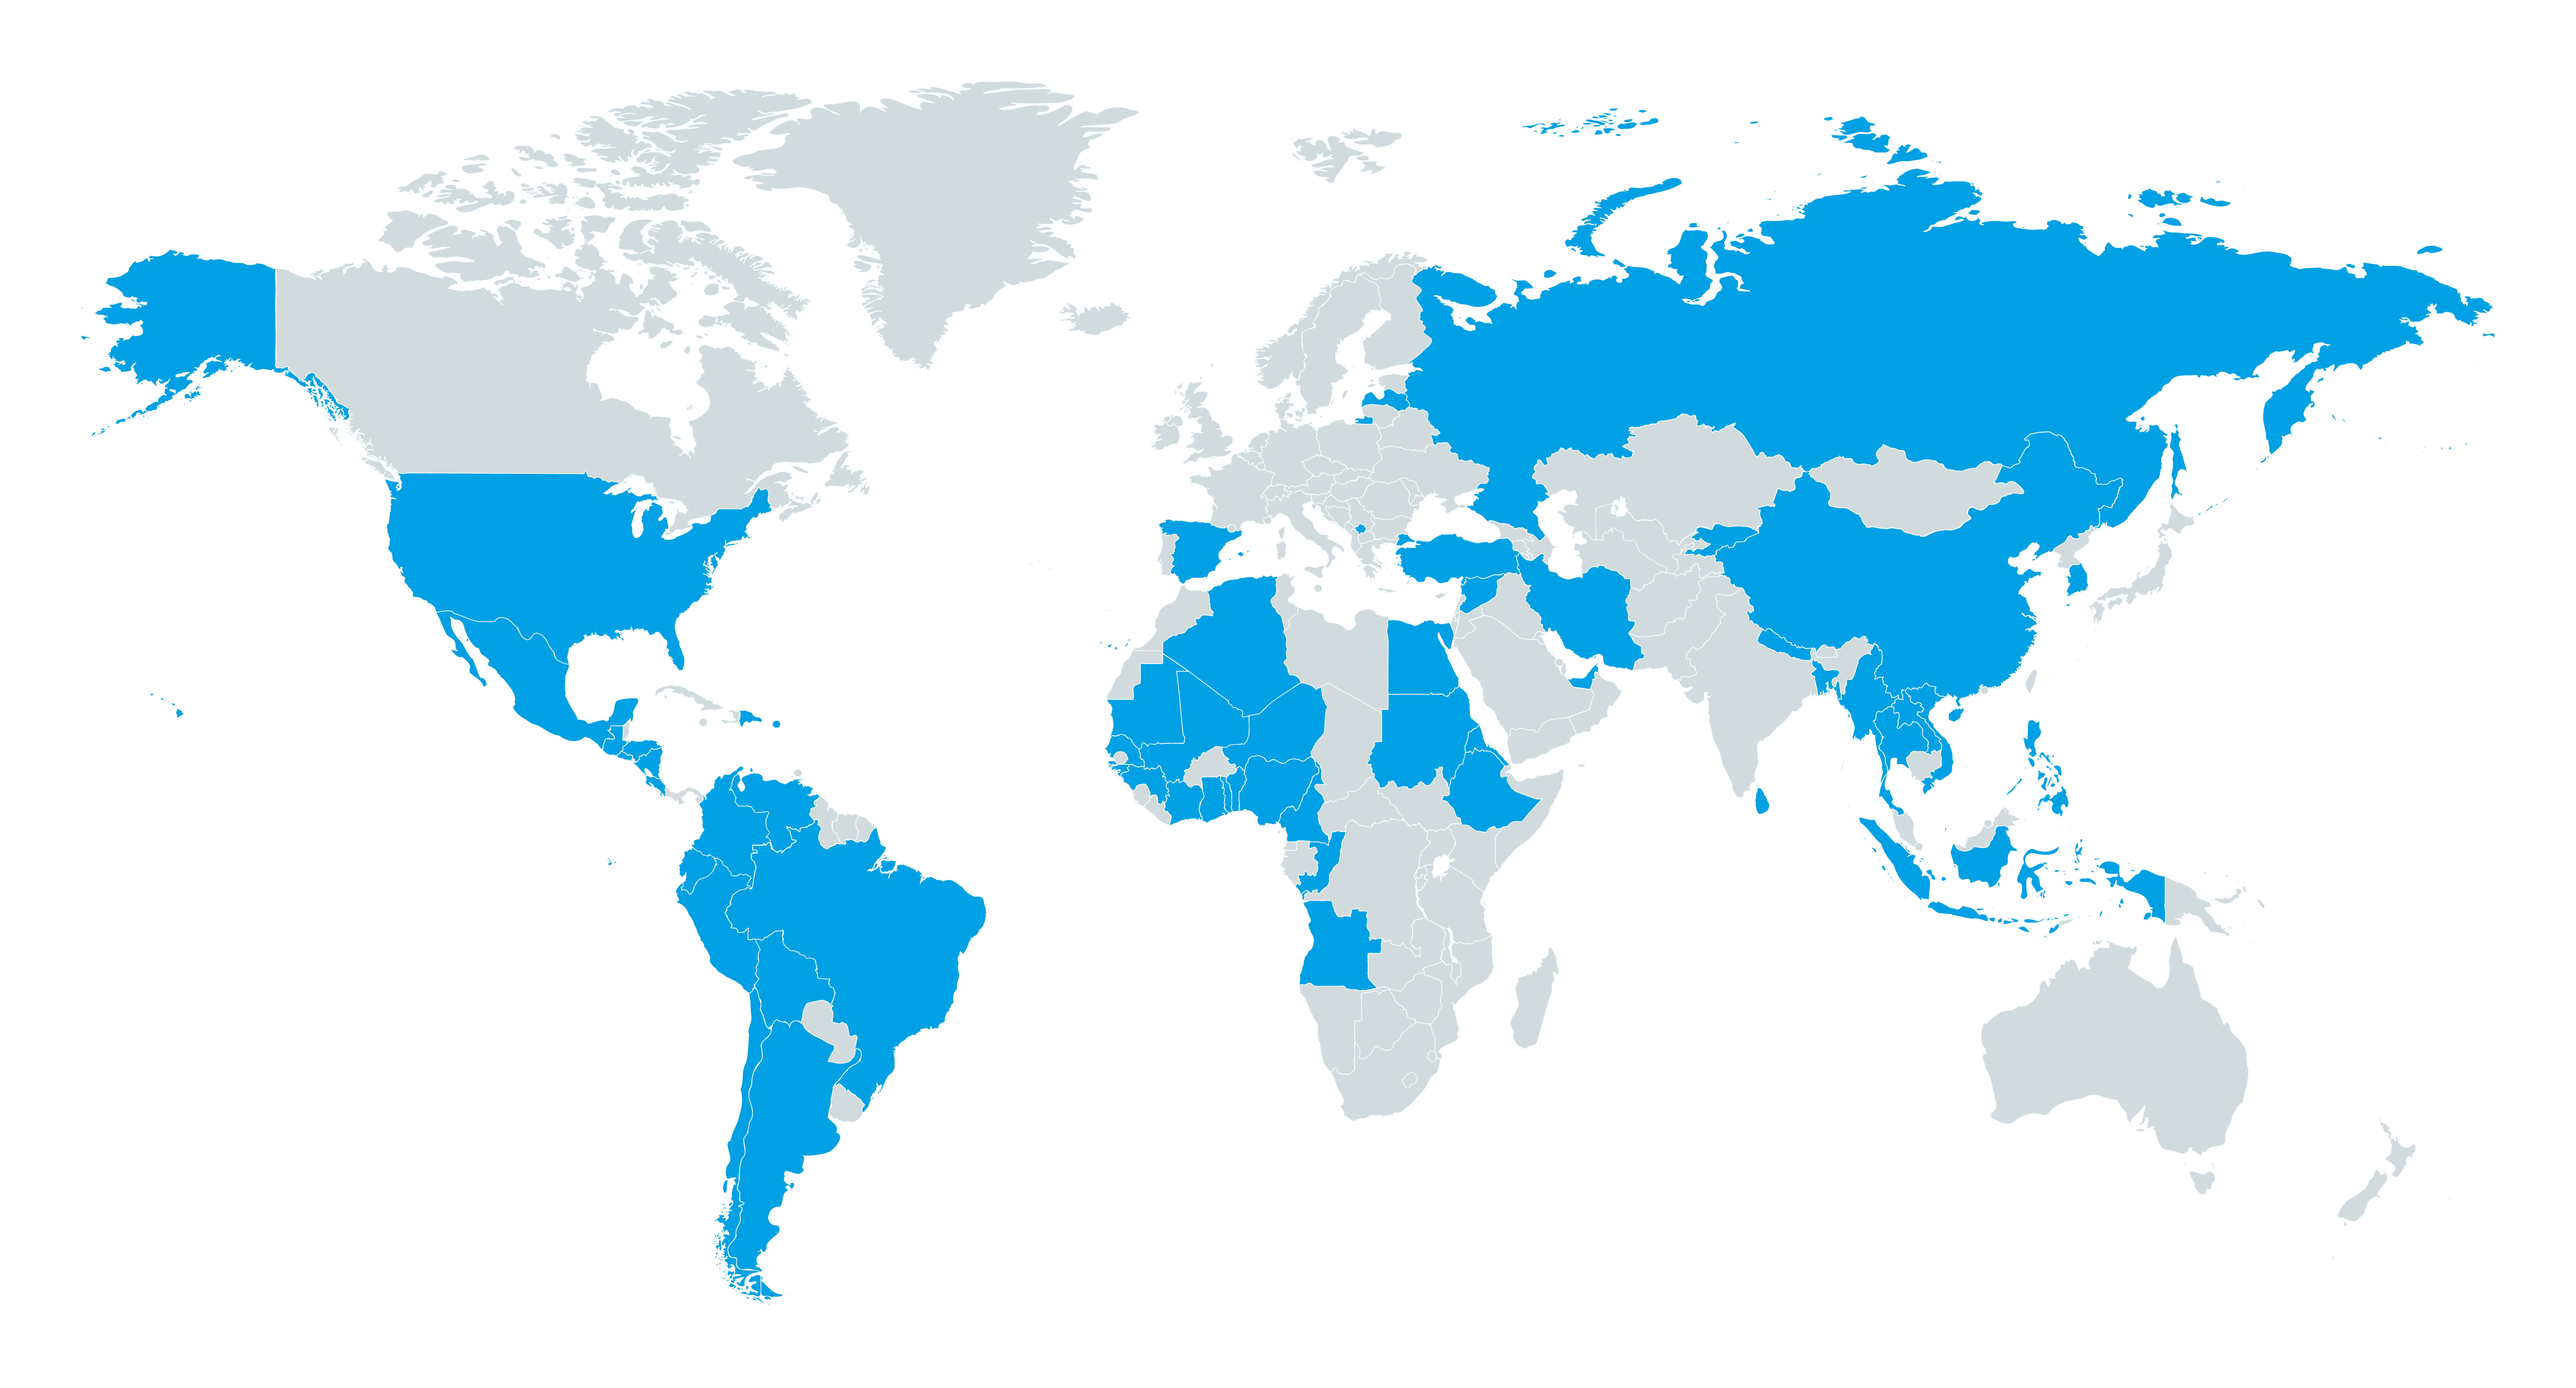 world map with countries represented by students and staff highlighted